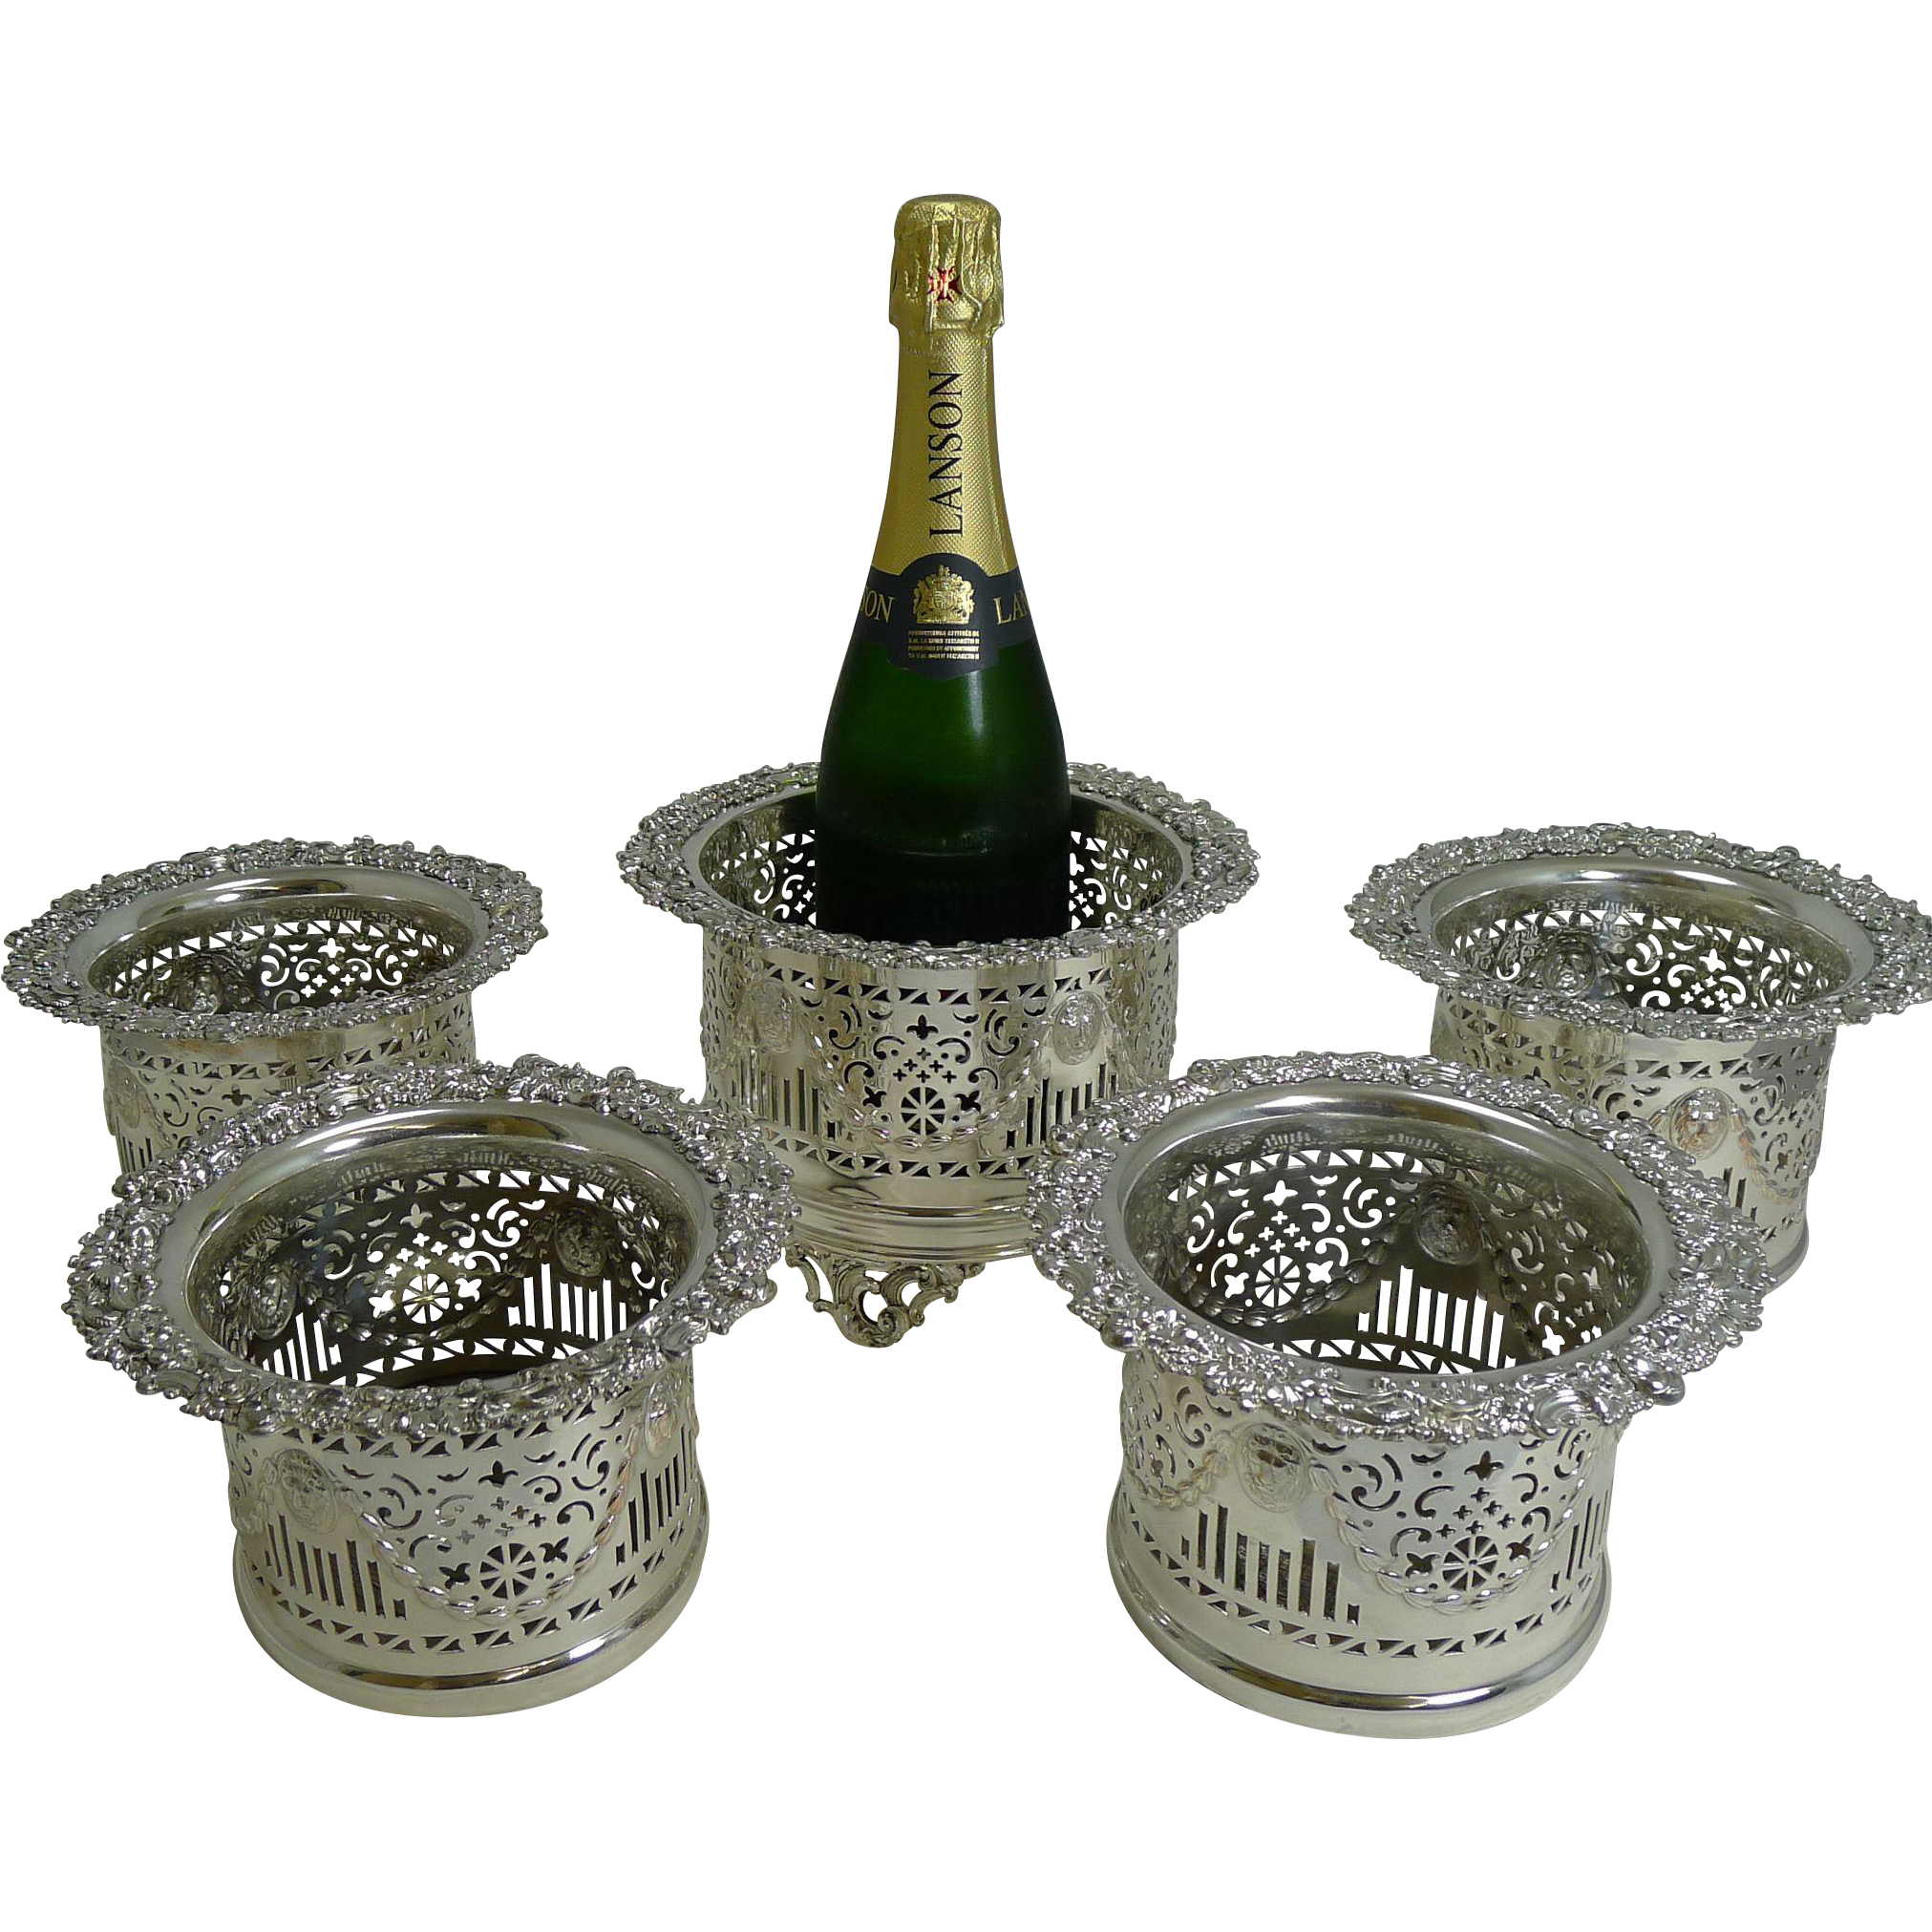 Suite Five Antique English Silver Plated Wine / Champagne Coasters or Holders c.1900